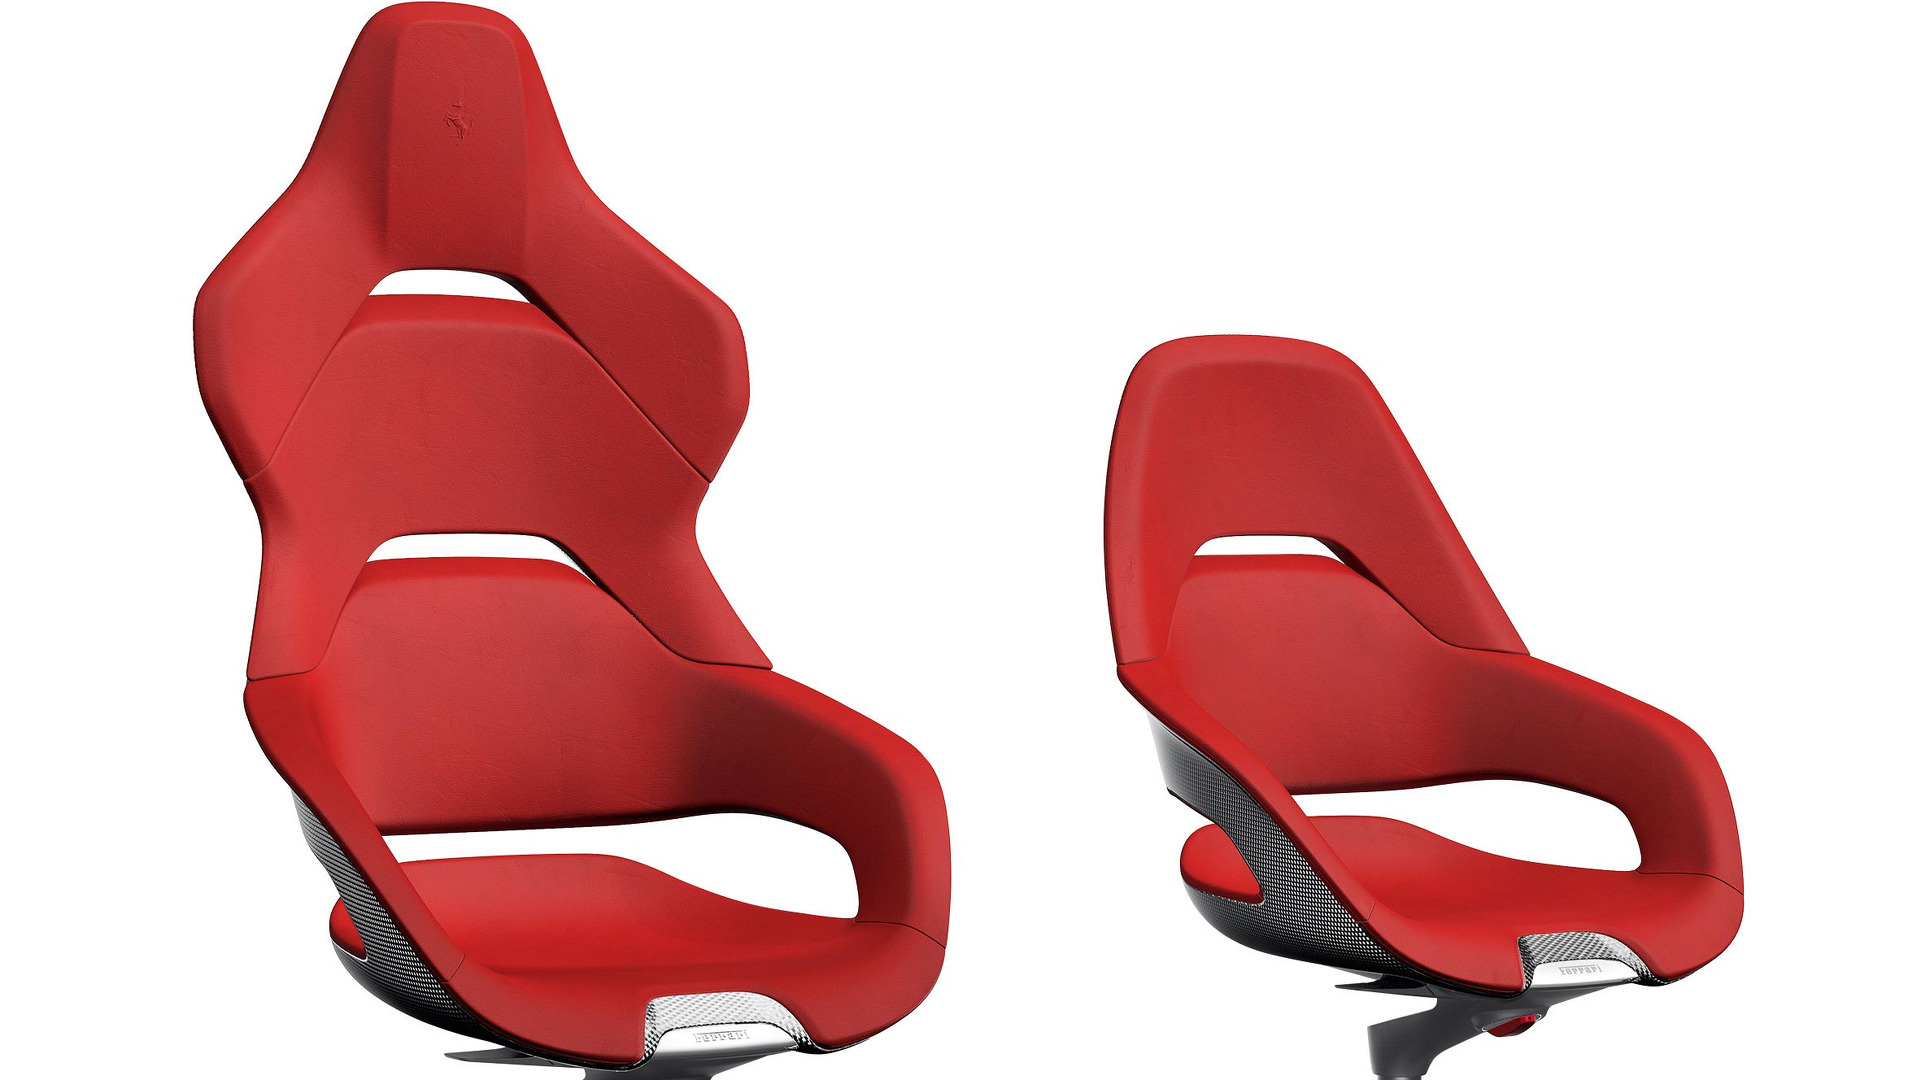 Ferrari Office Chair Offers Supercar Seating While Writing Emails